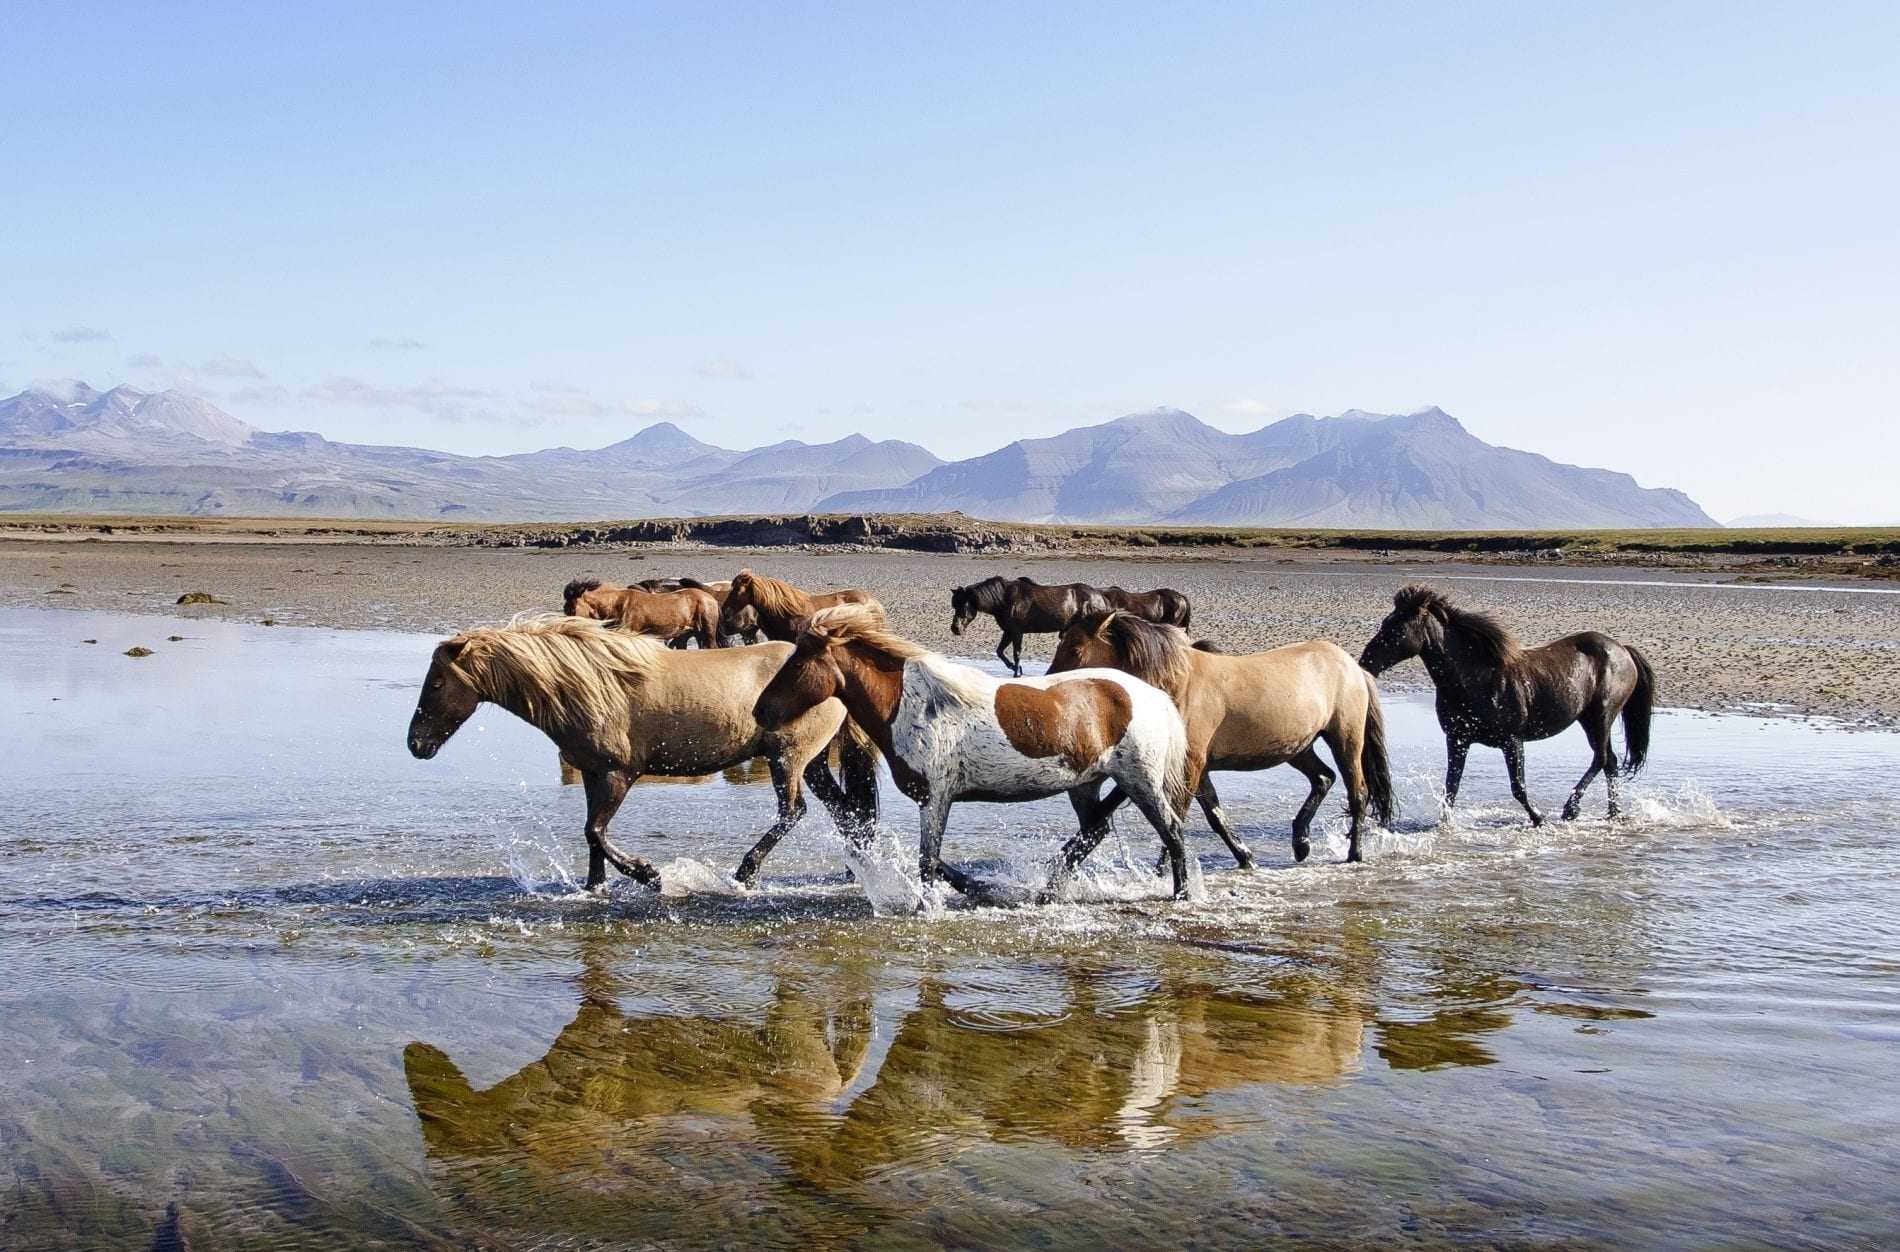 A couple of horses walking in water